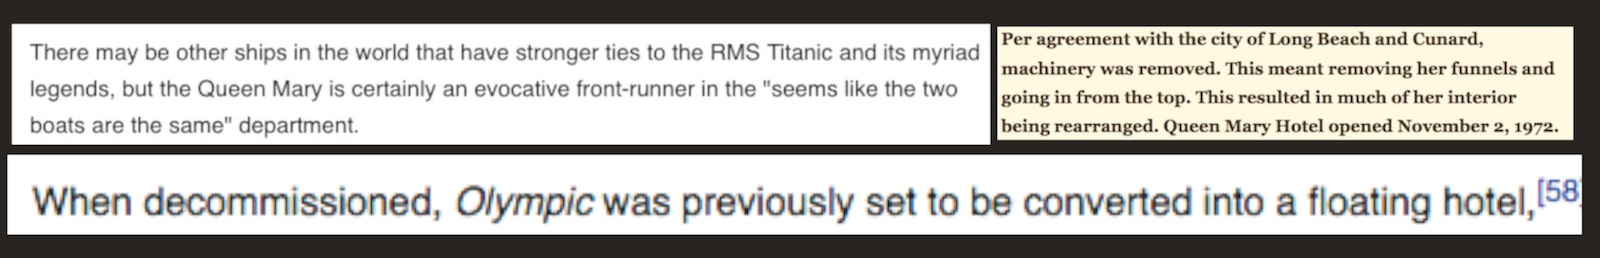 0-two_boats_are_the_same.jpg